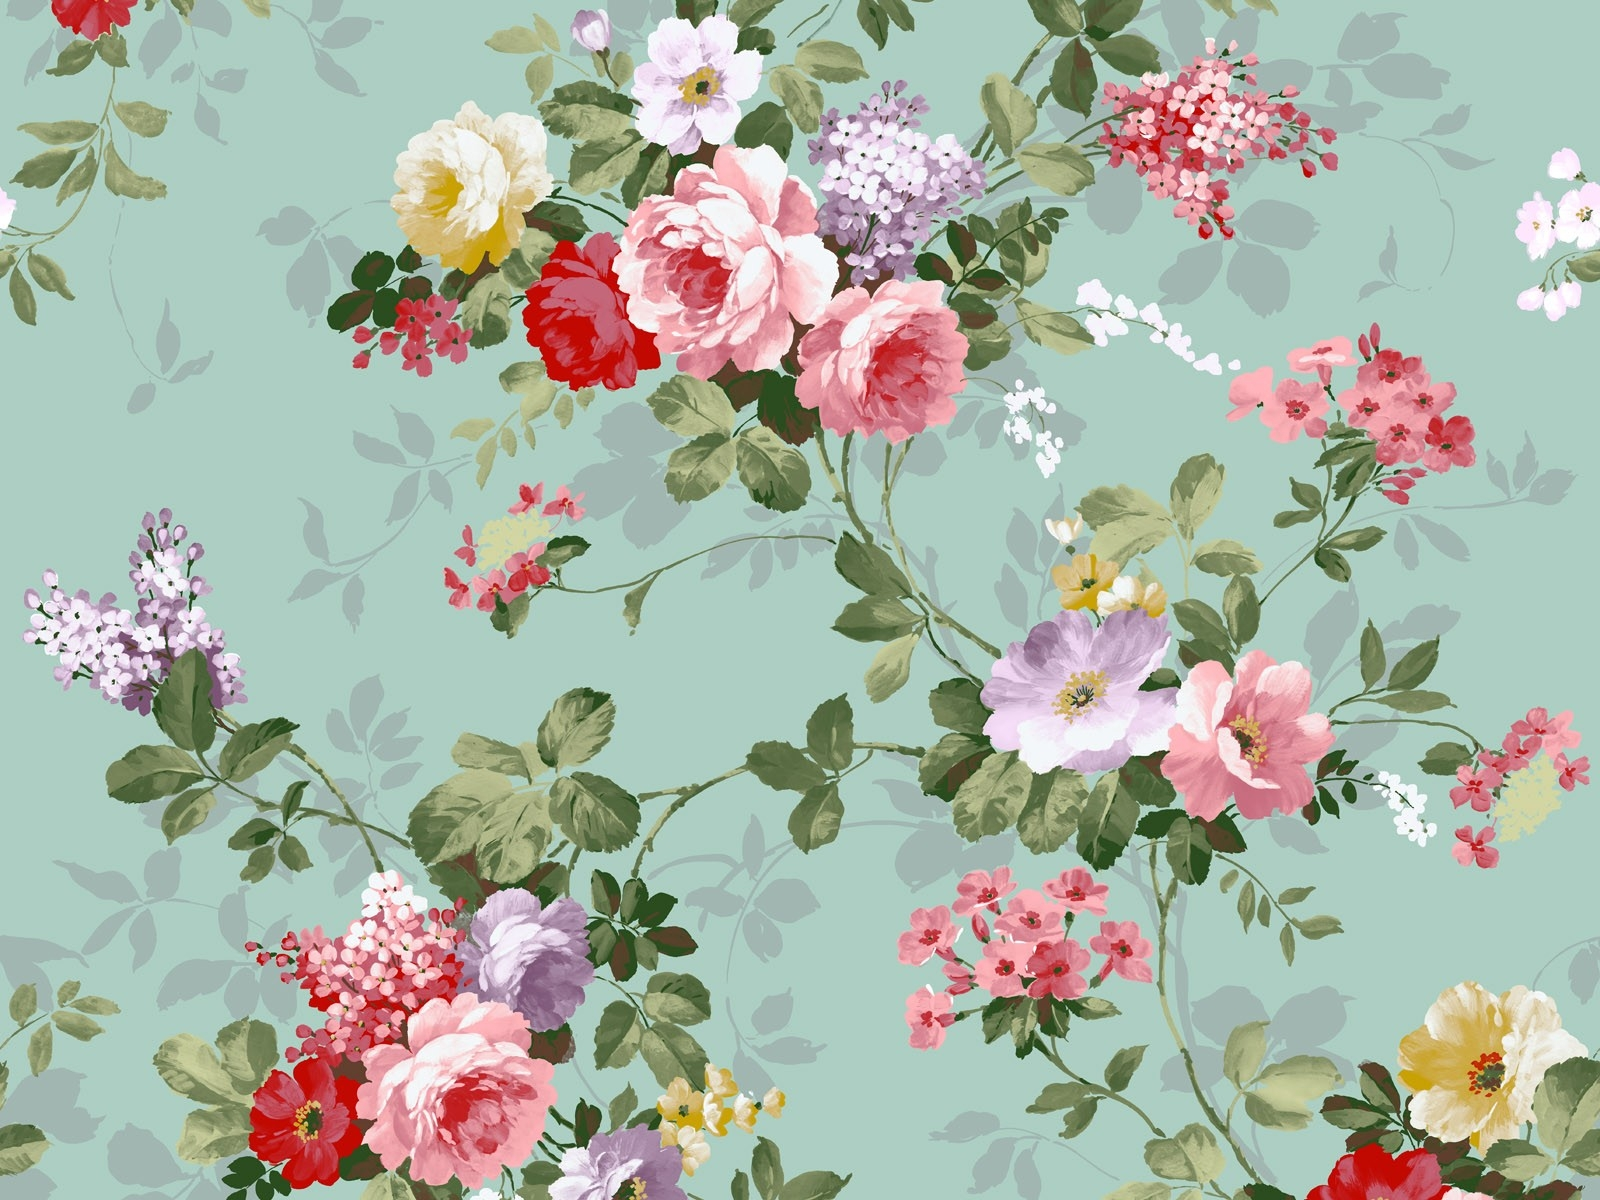 Cute Vintage Flowers Wallpaper 1600x1200 22760